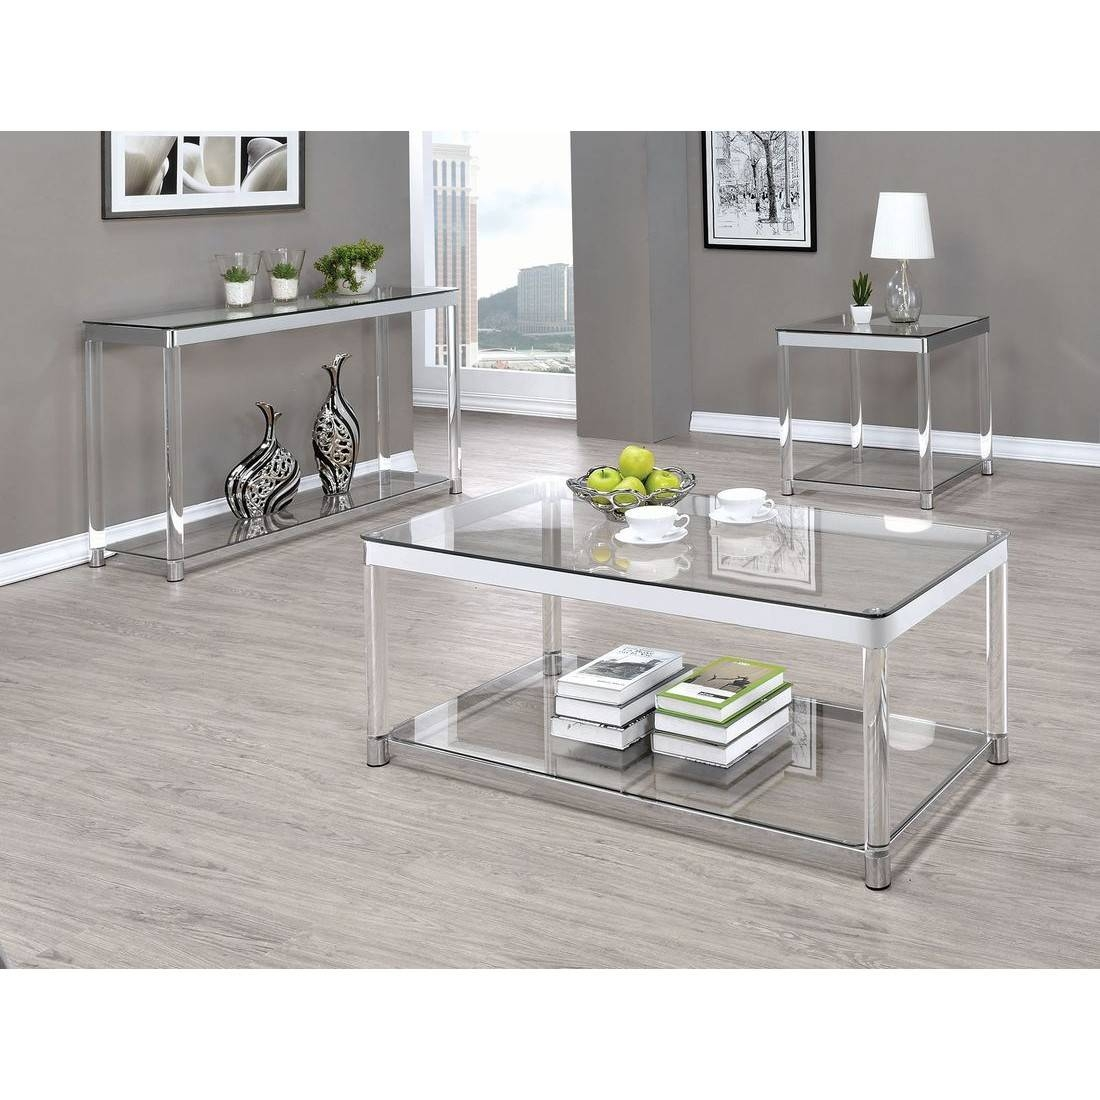 Coaster 720749 Sofa Table In Chrome/clear Acrylic Intended For Chrome Sofa Tables (View 4 of 15)